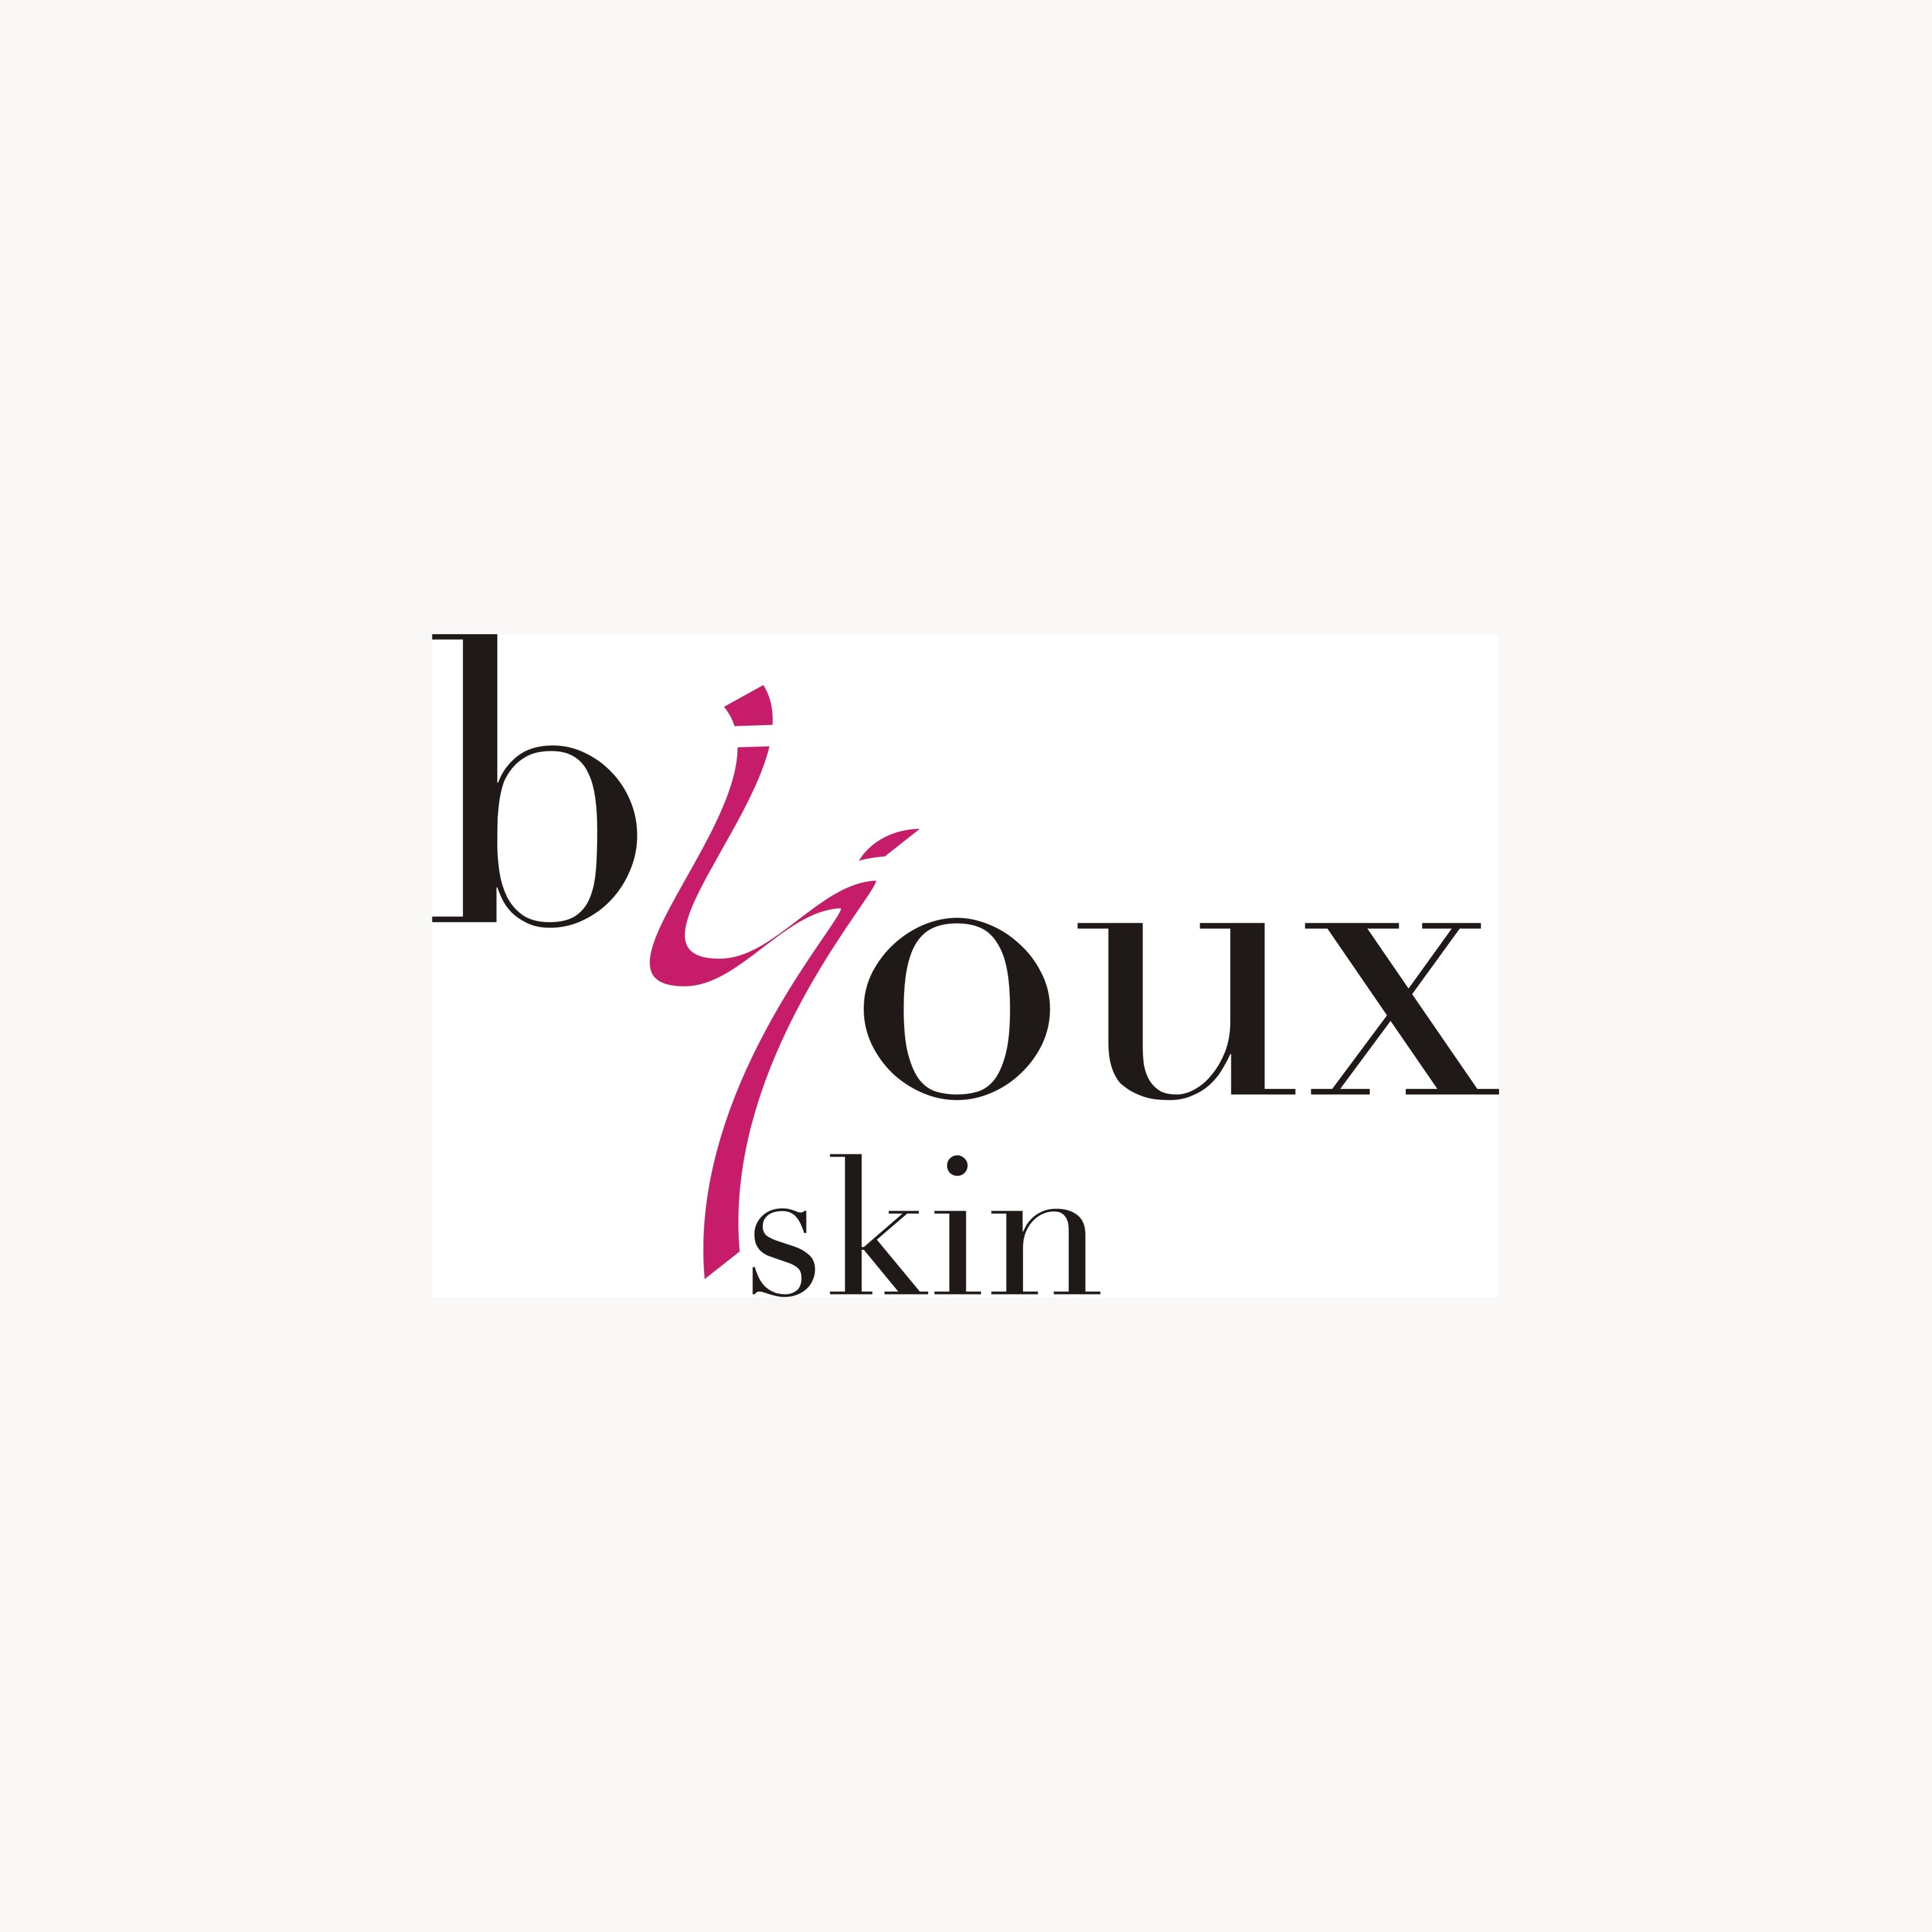 Bijoux 4 Skin - Temporary Tattoos